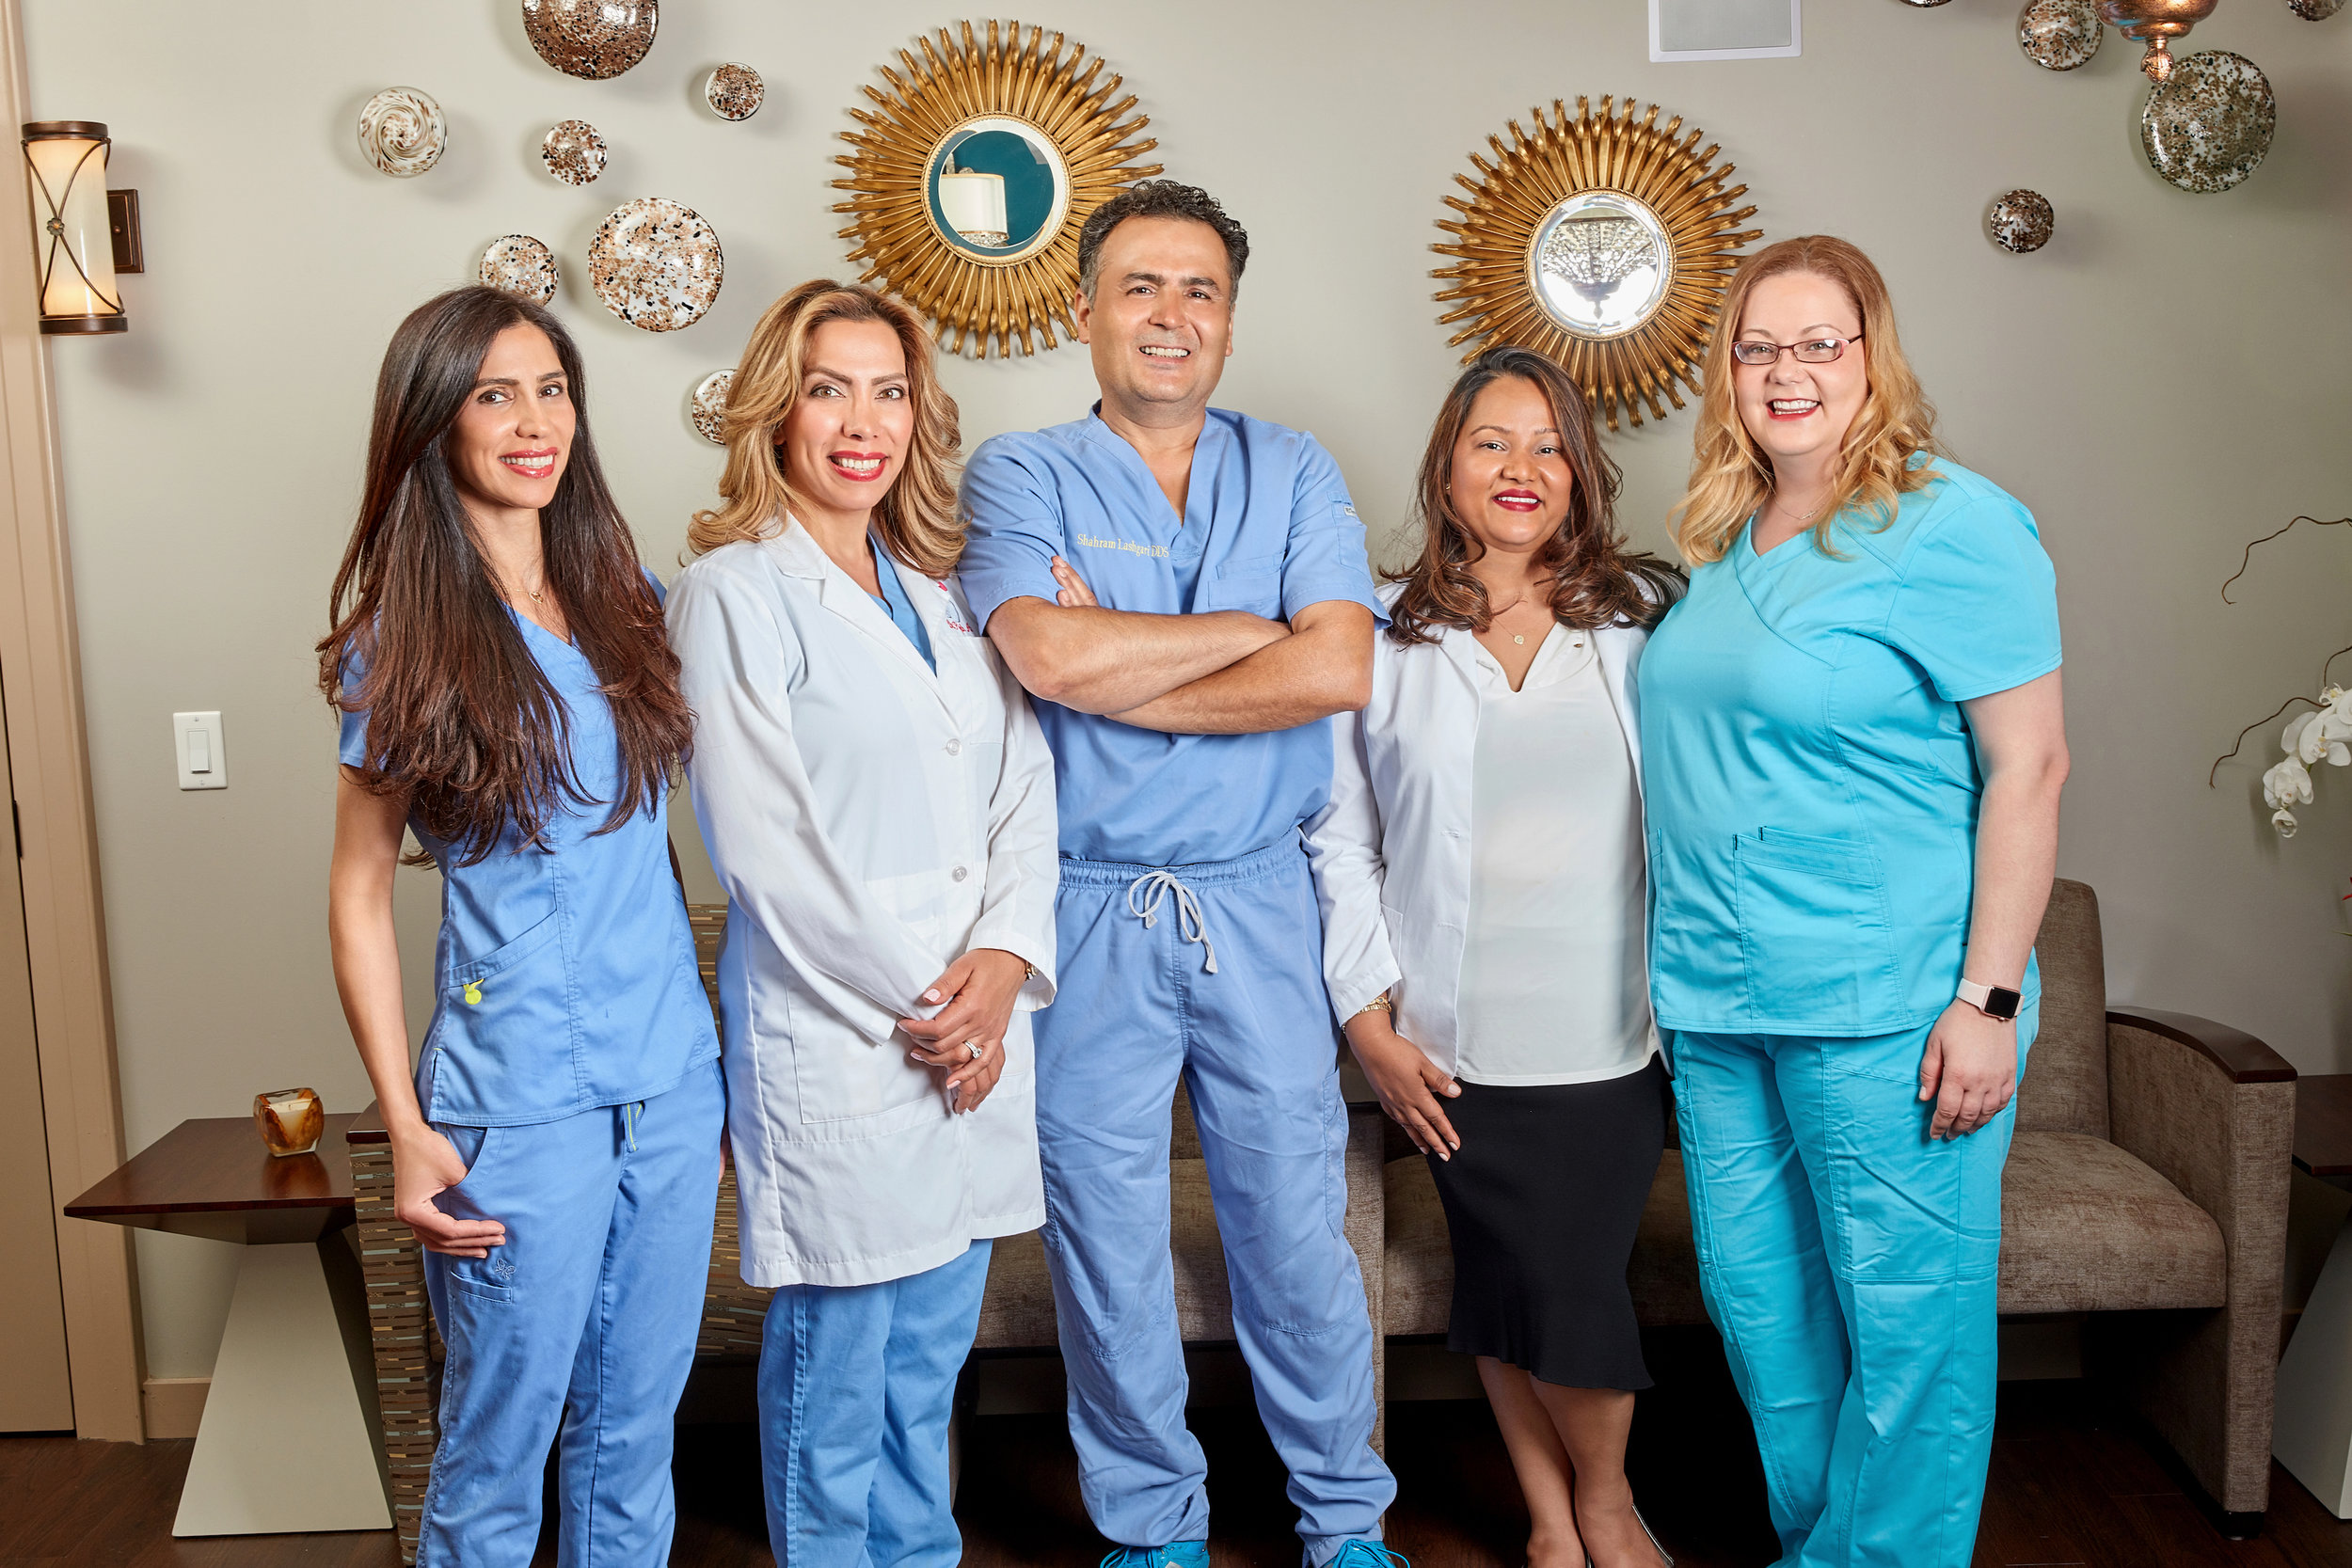 Ameri Dental Group Staff |Credit: Photography by Eric Garcia-March